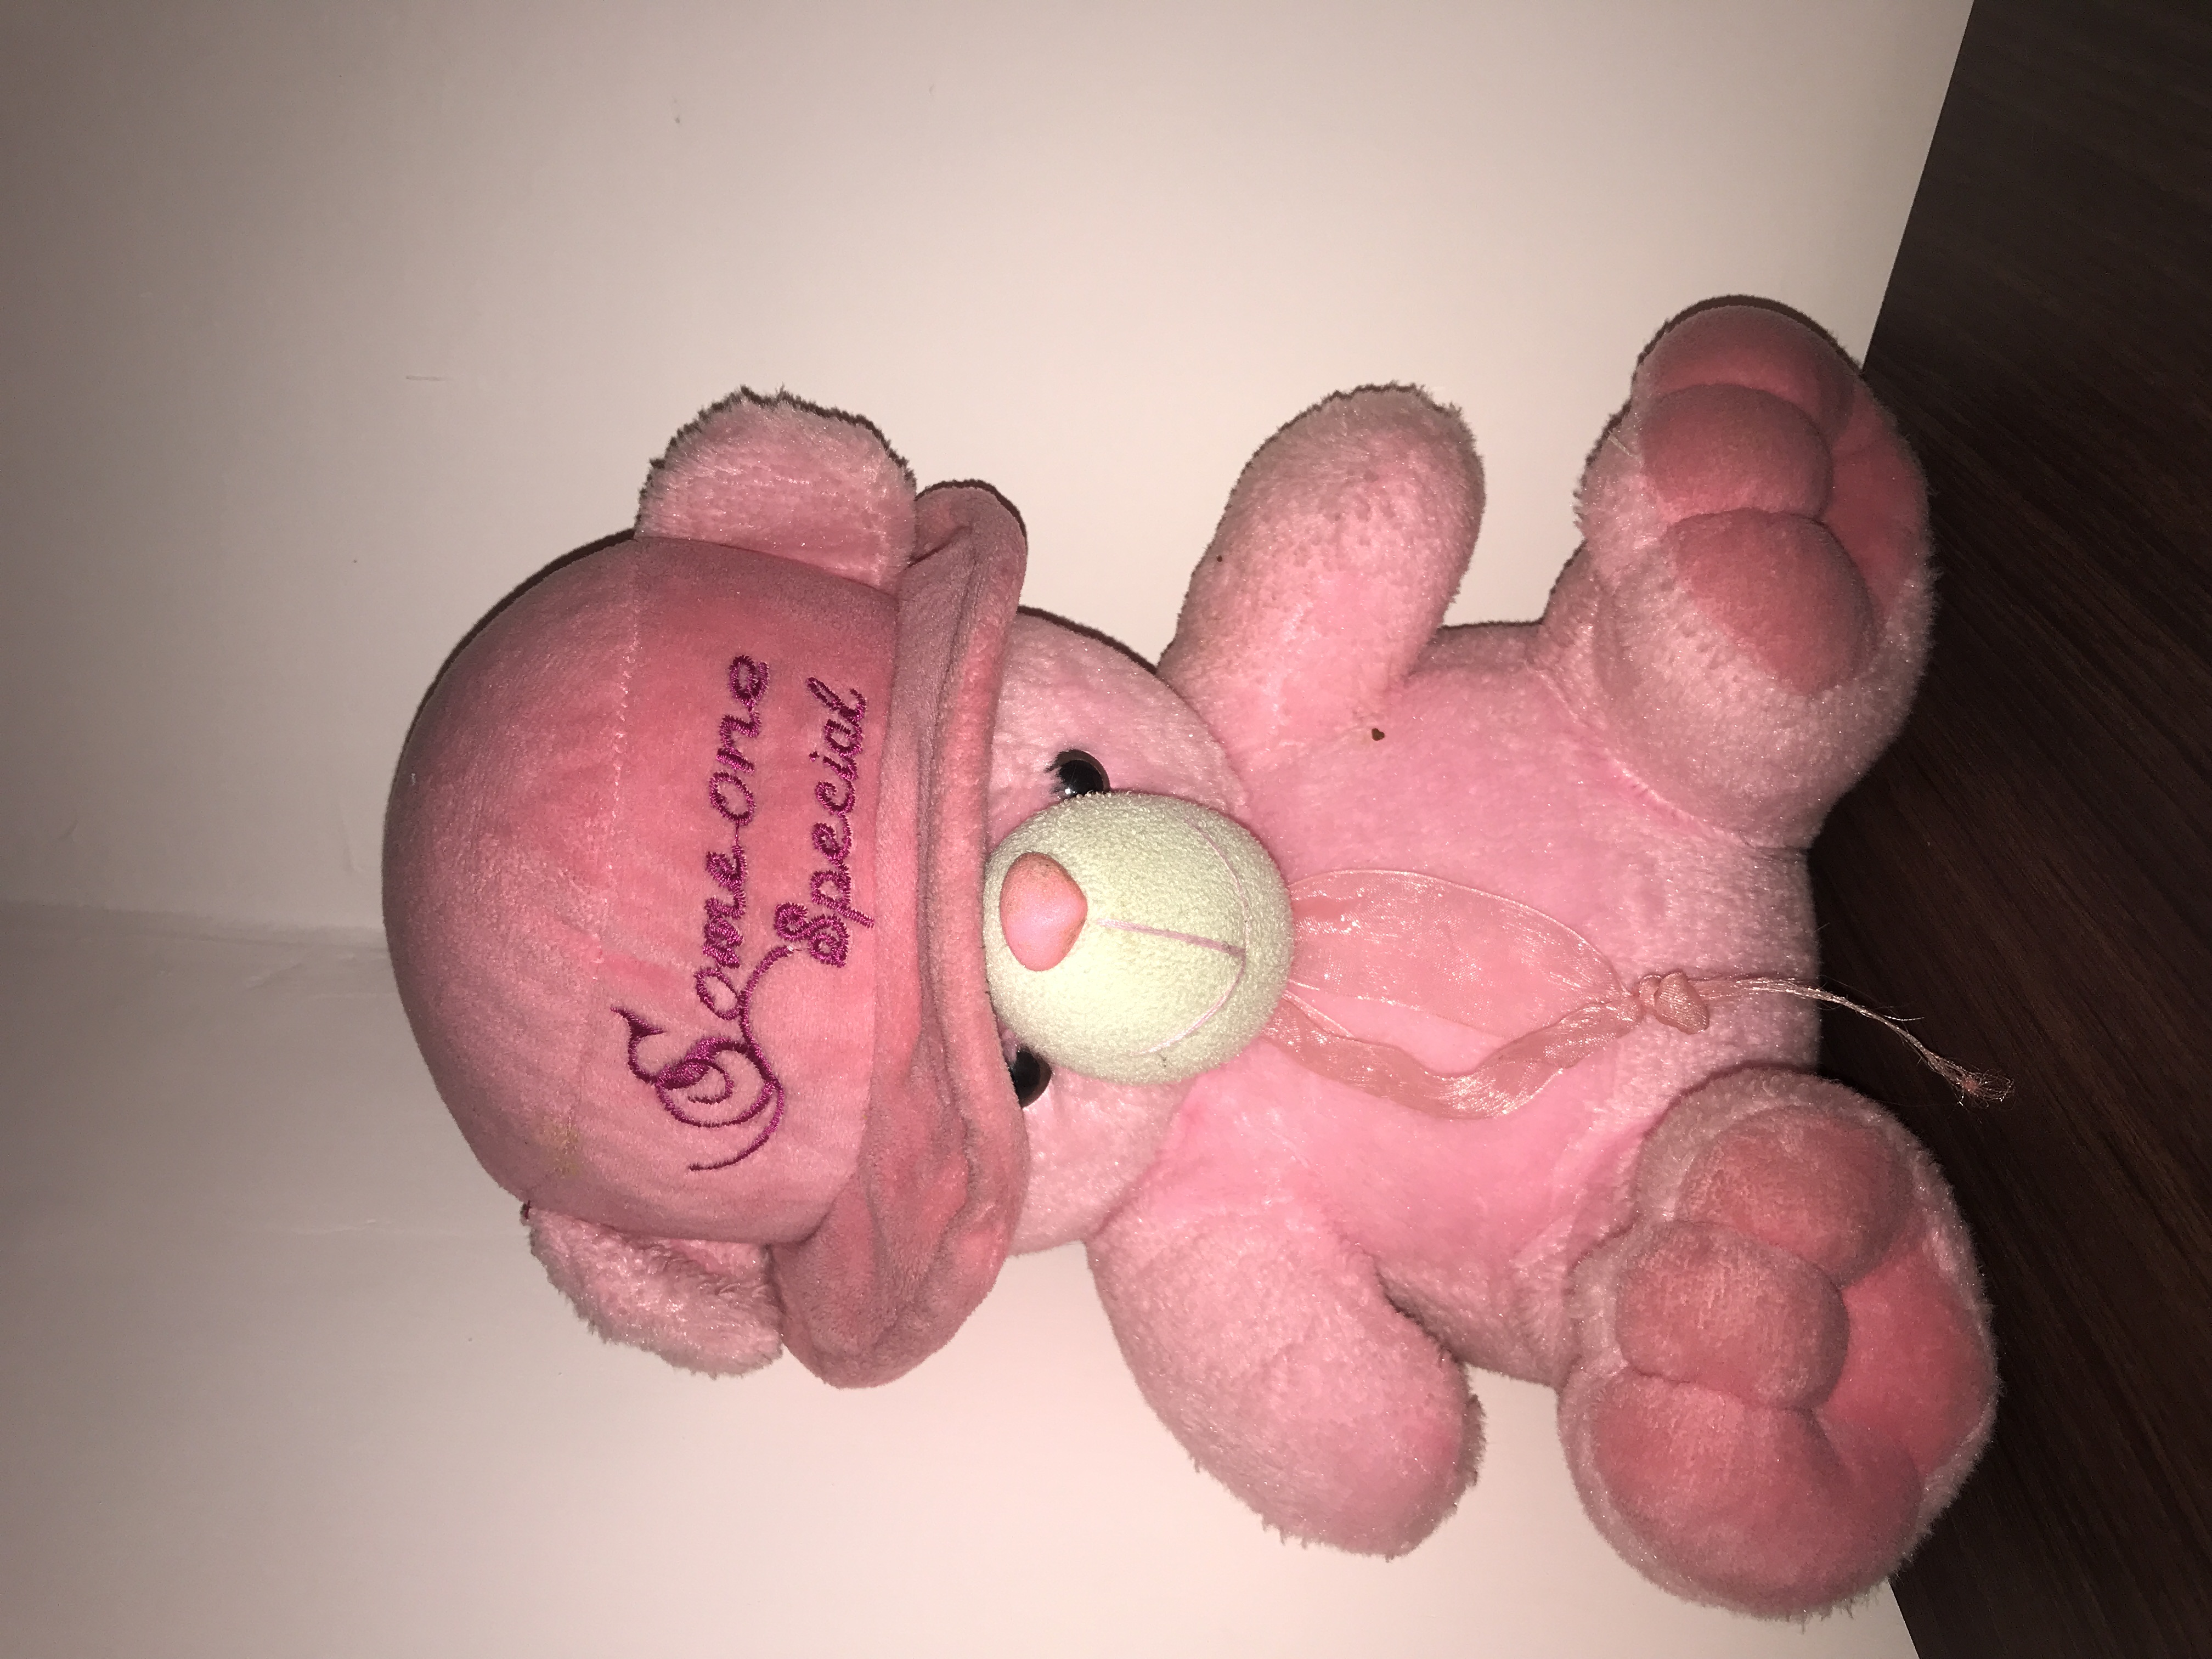 Ultra Cap Teddy Soft Toy-Ultra cap teddy soft toy-By sonisejwal